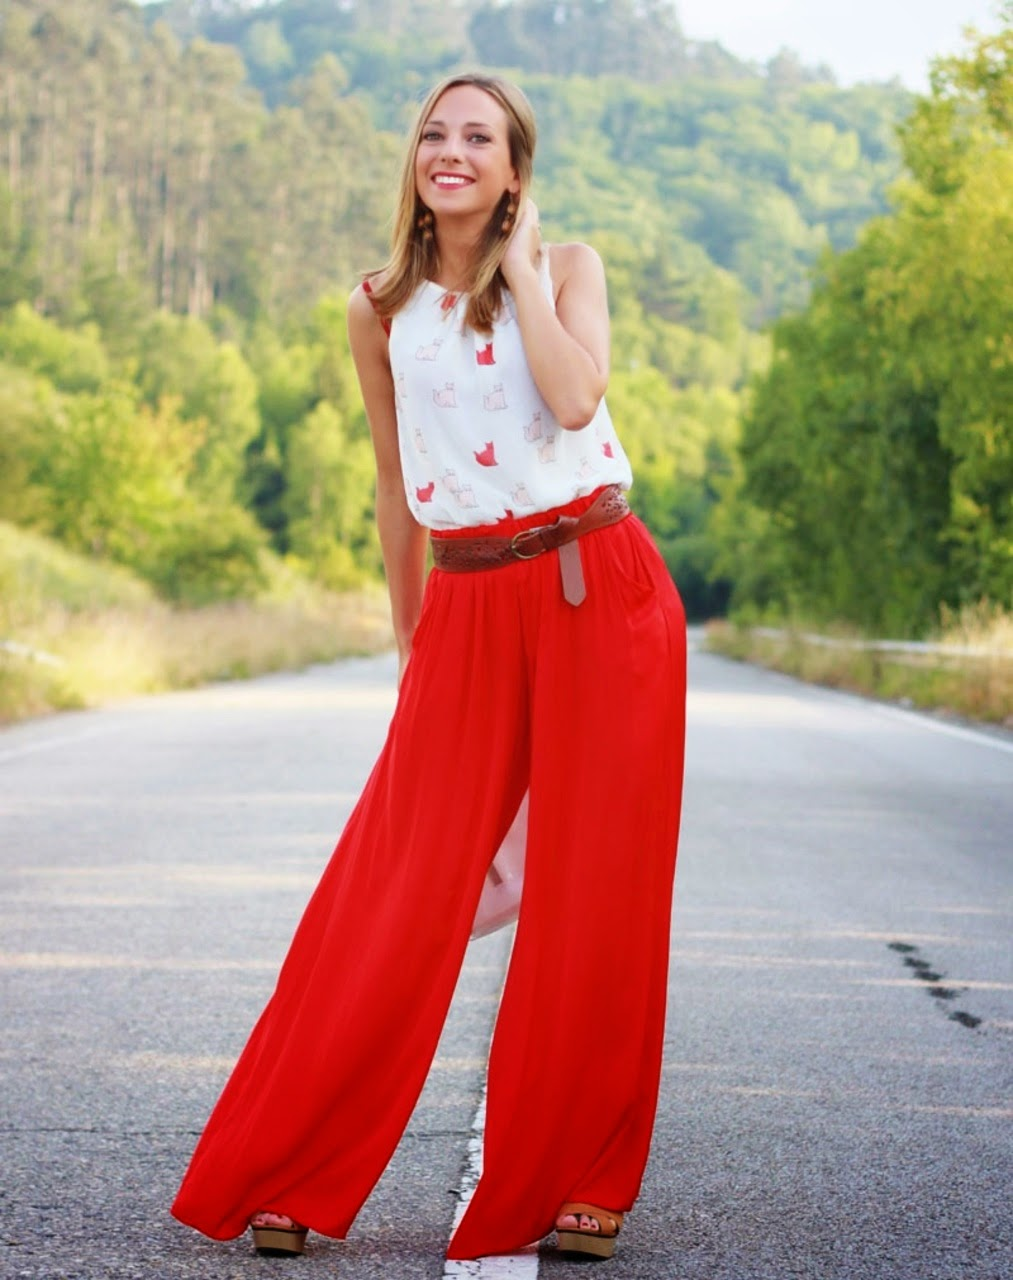 Wearing a Red Palazzo Trousers for Summer